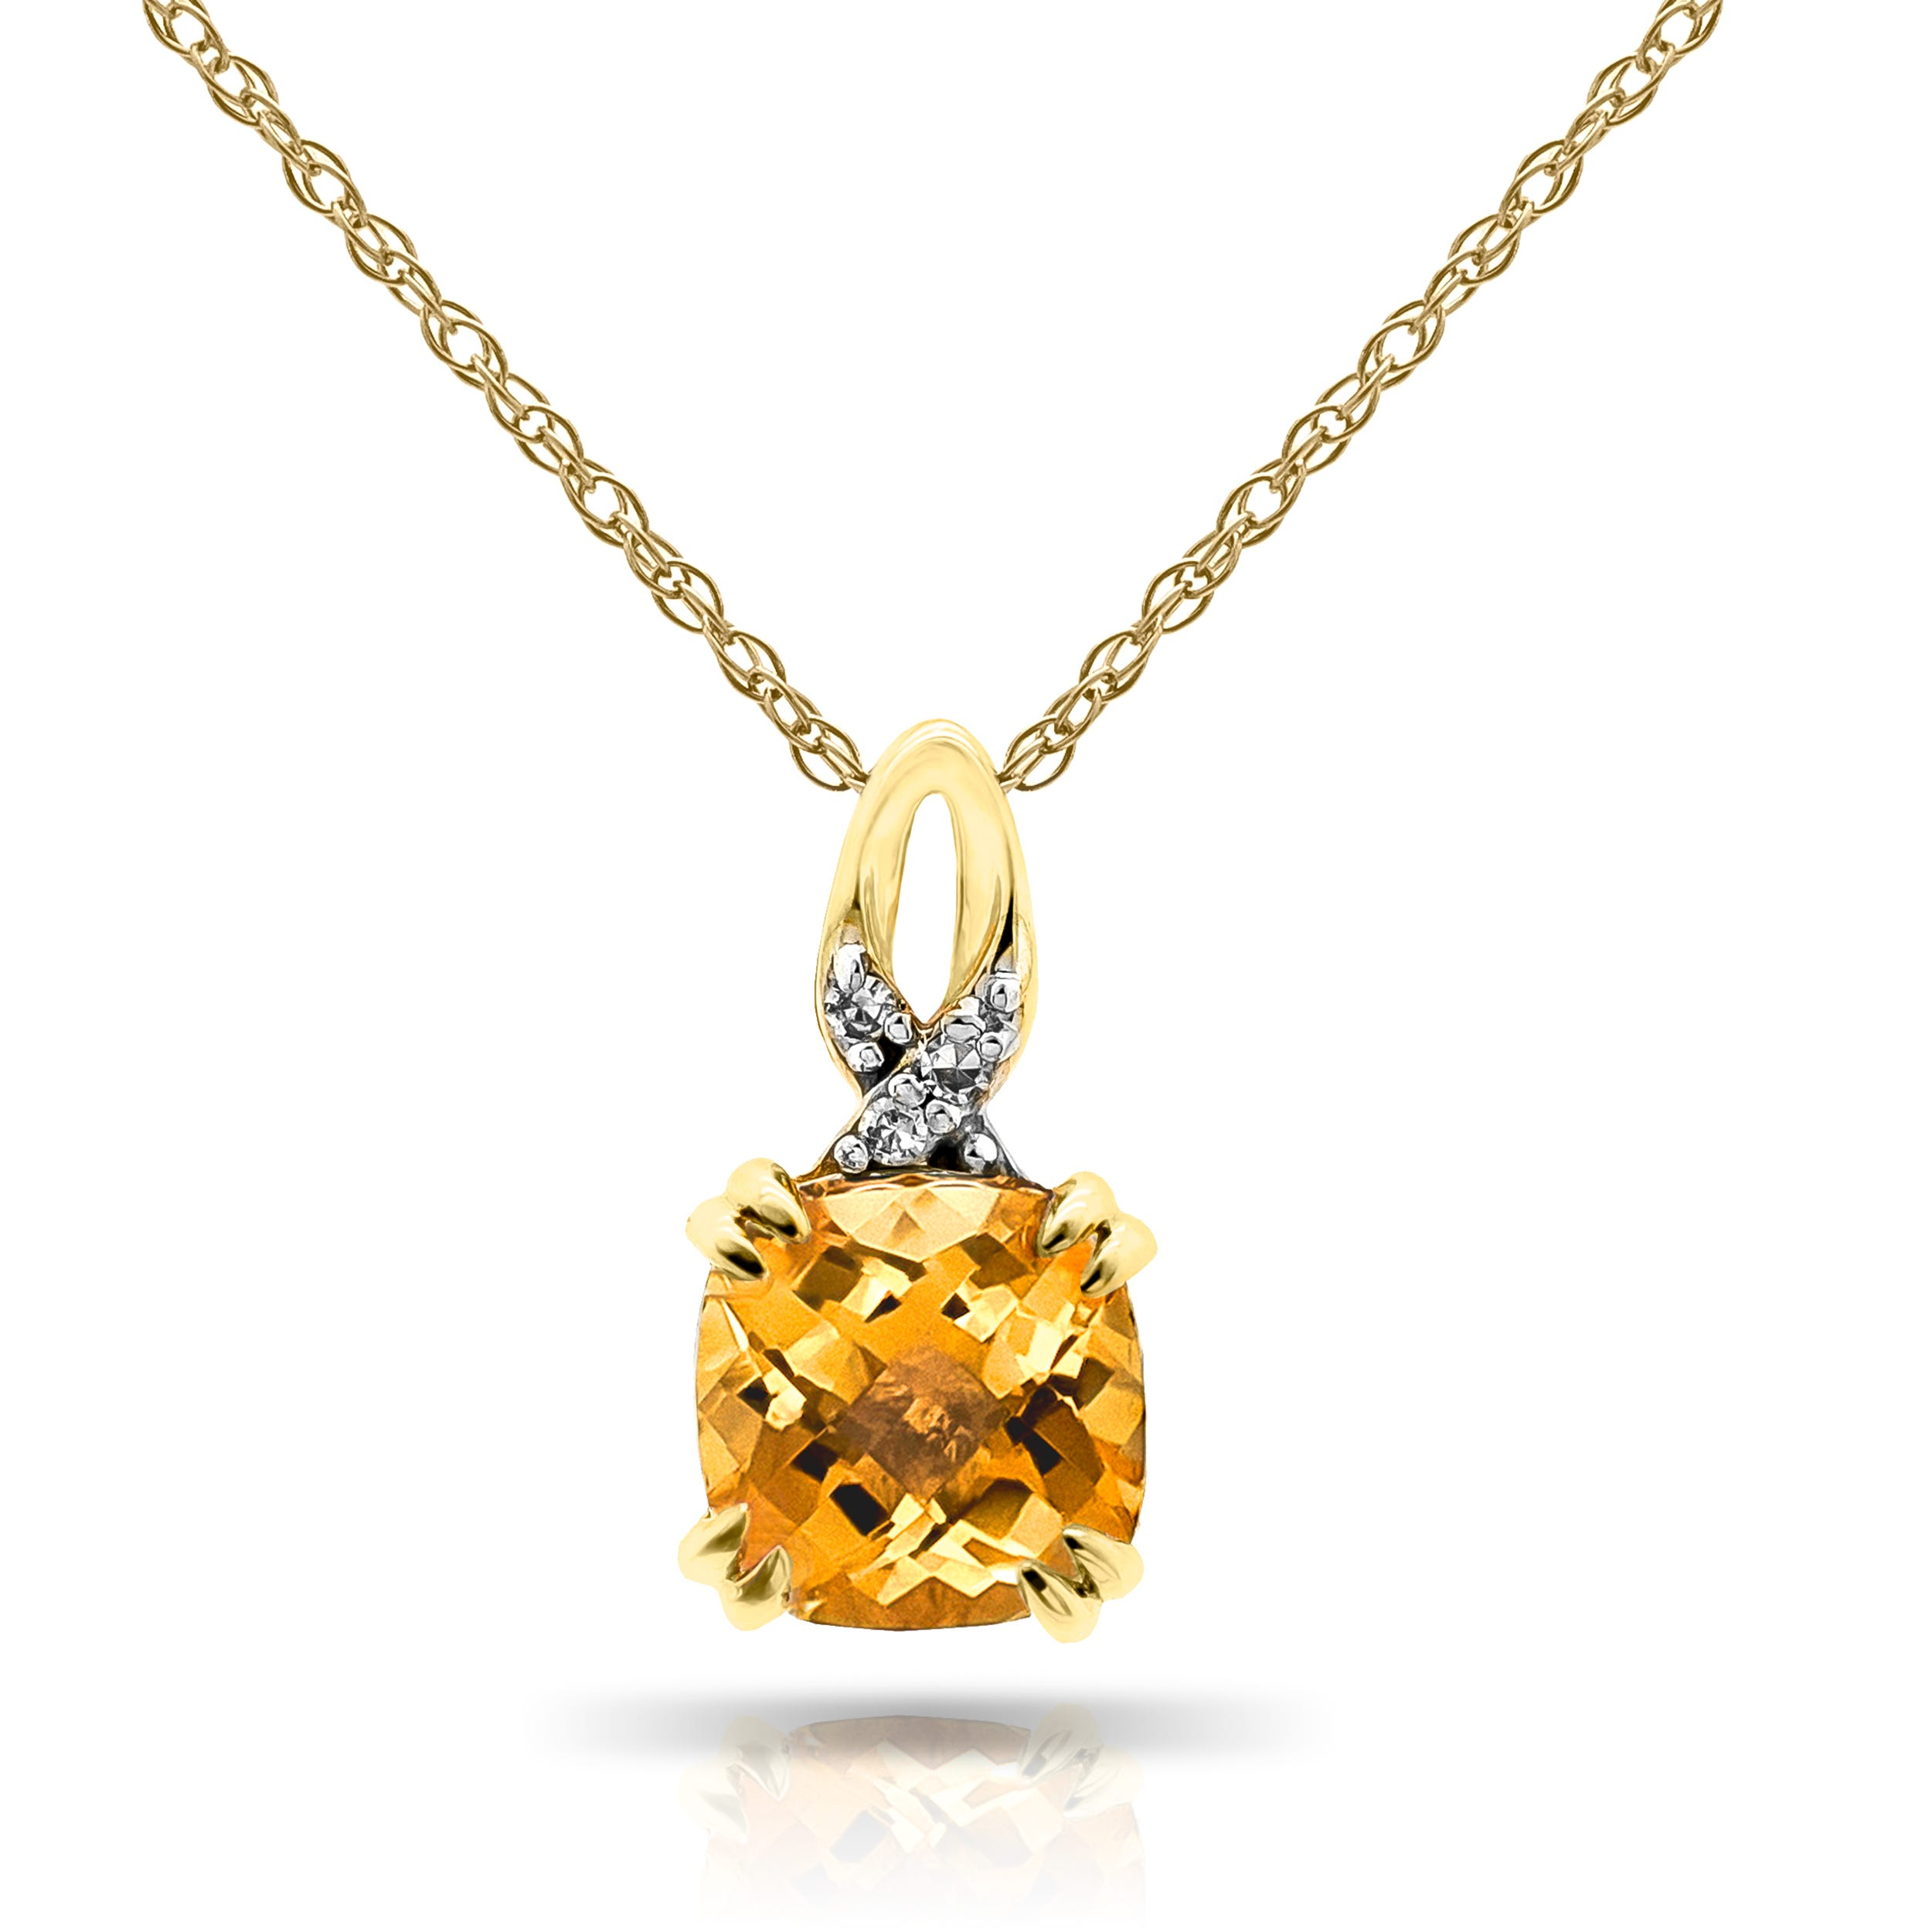 Cushion-Cut Citrine & Diamond Pendant in 10k Yellow Gold